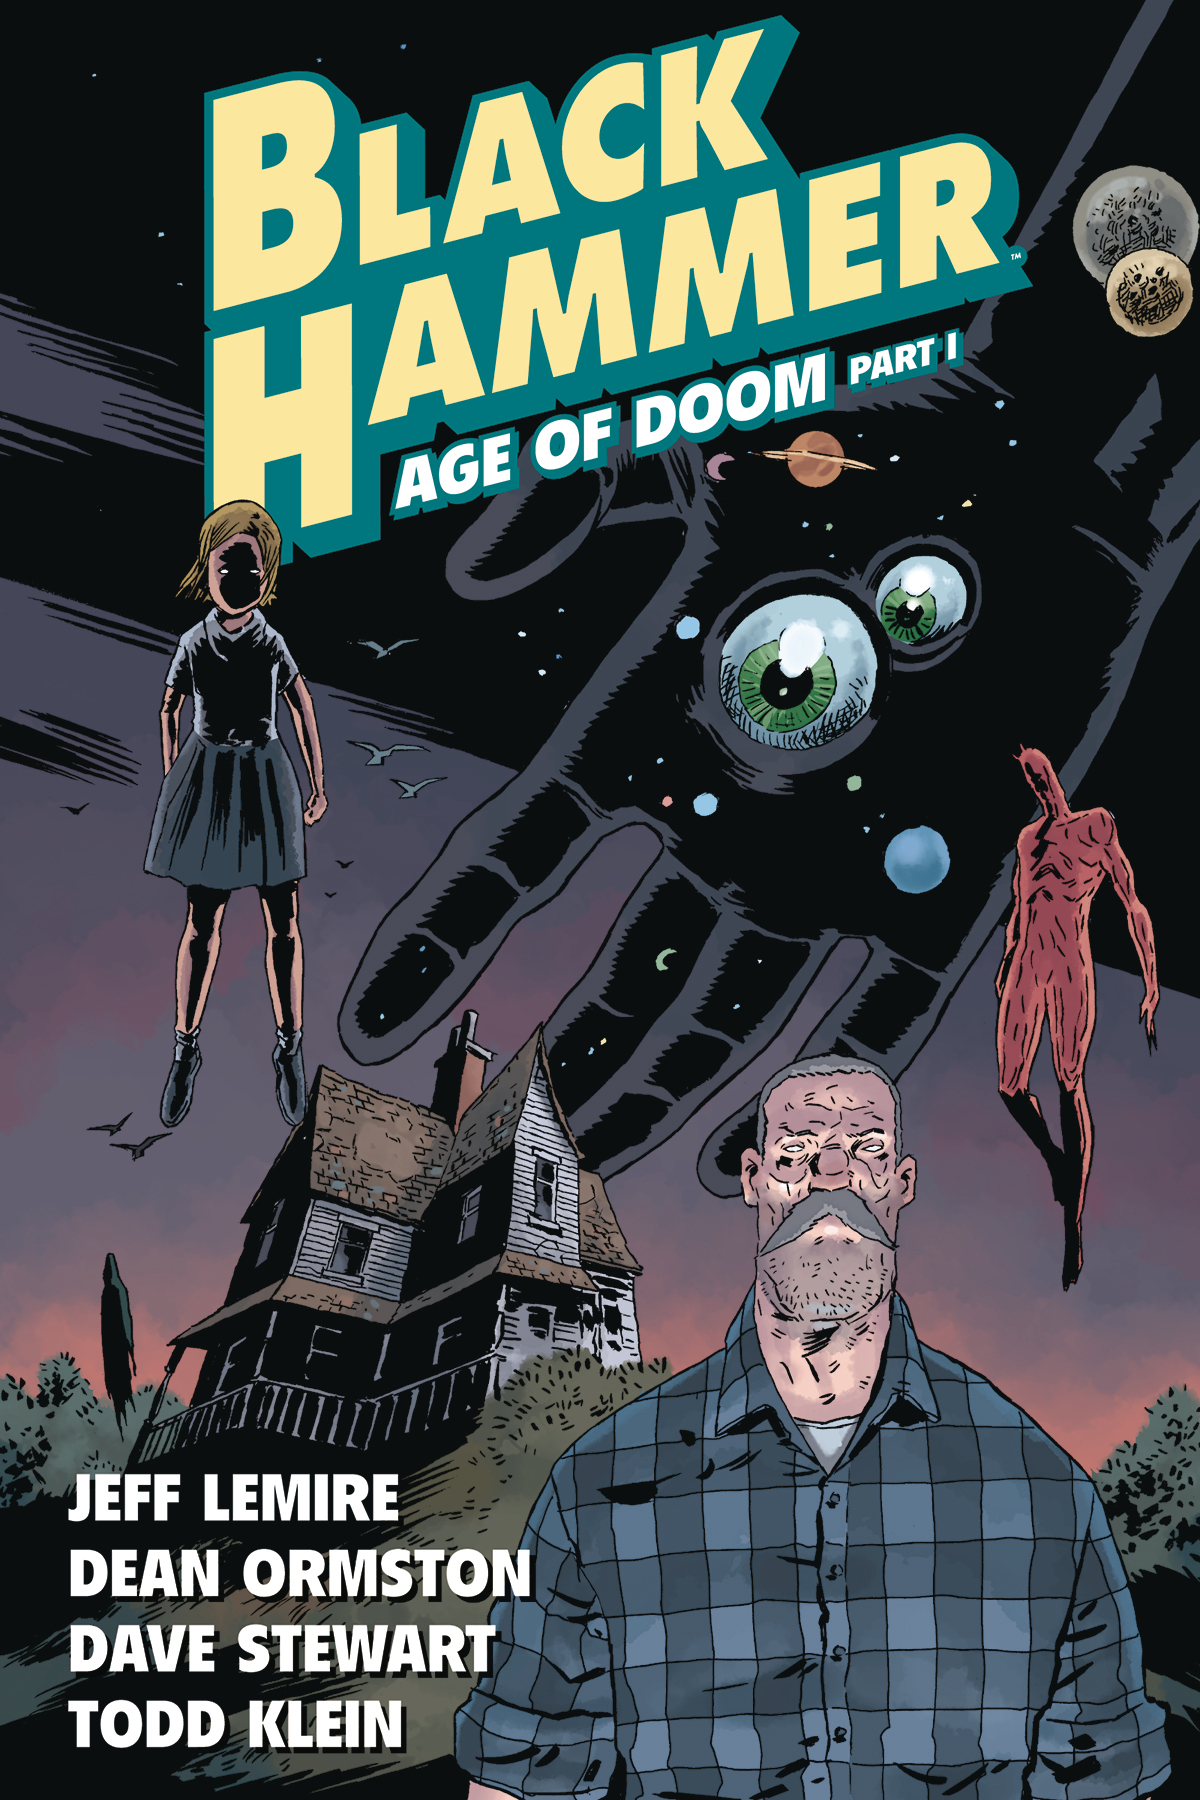 BLACK HAMMER TP VOL 03 AGE OF DOOM PART I (SEP180278)